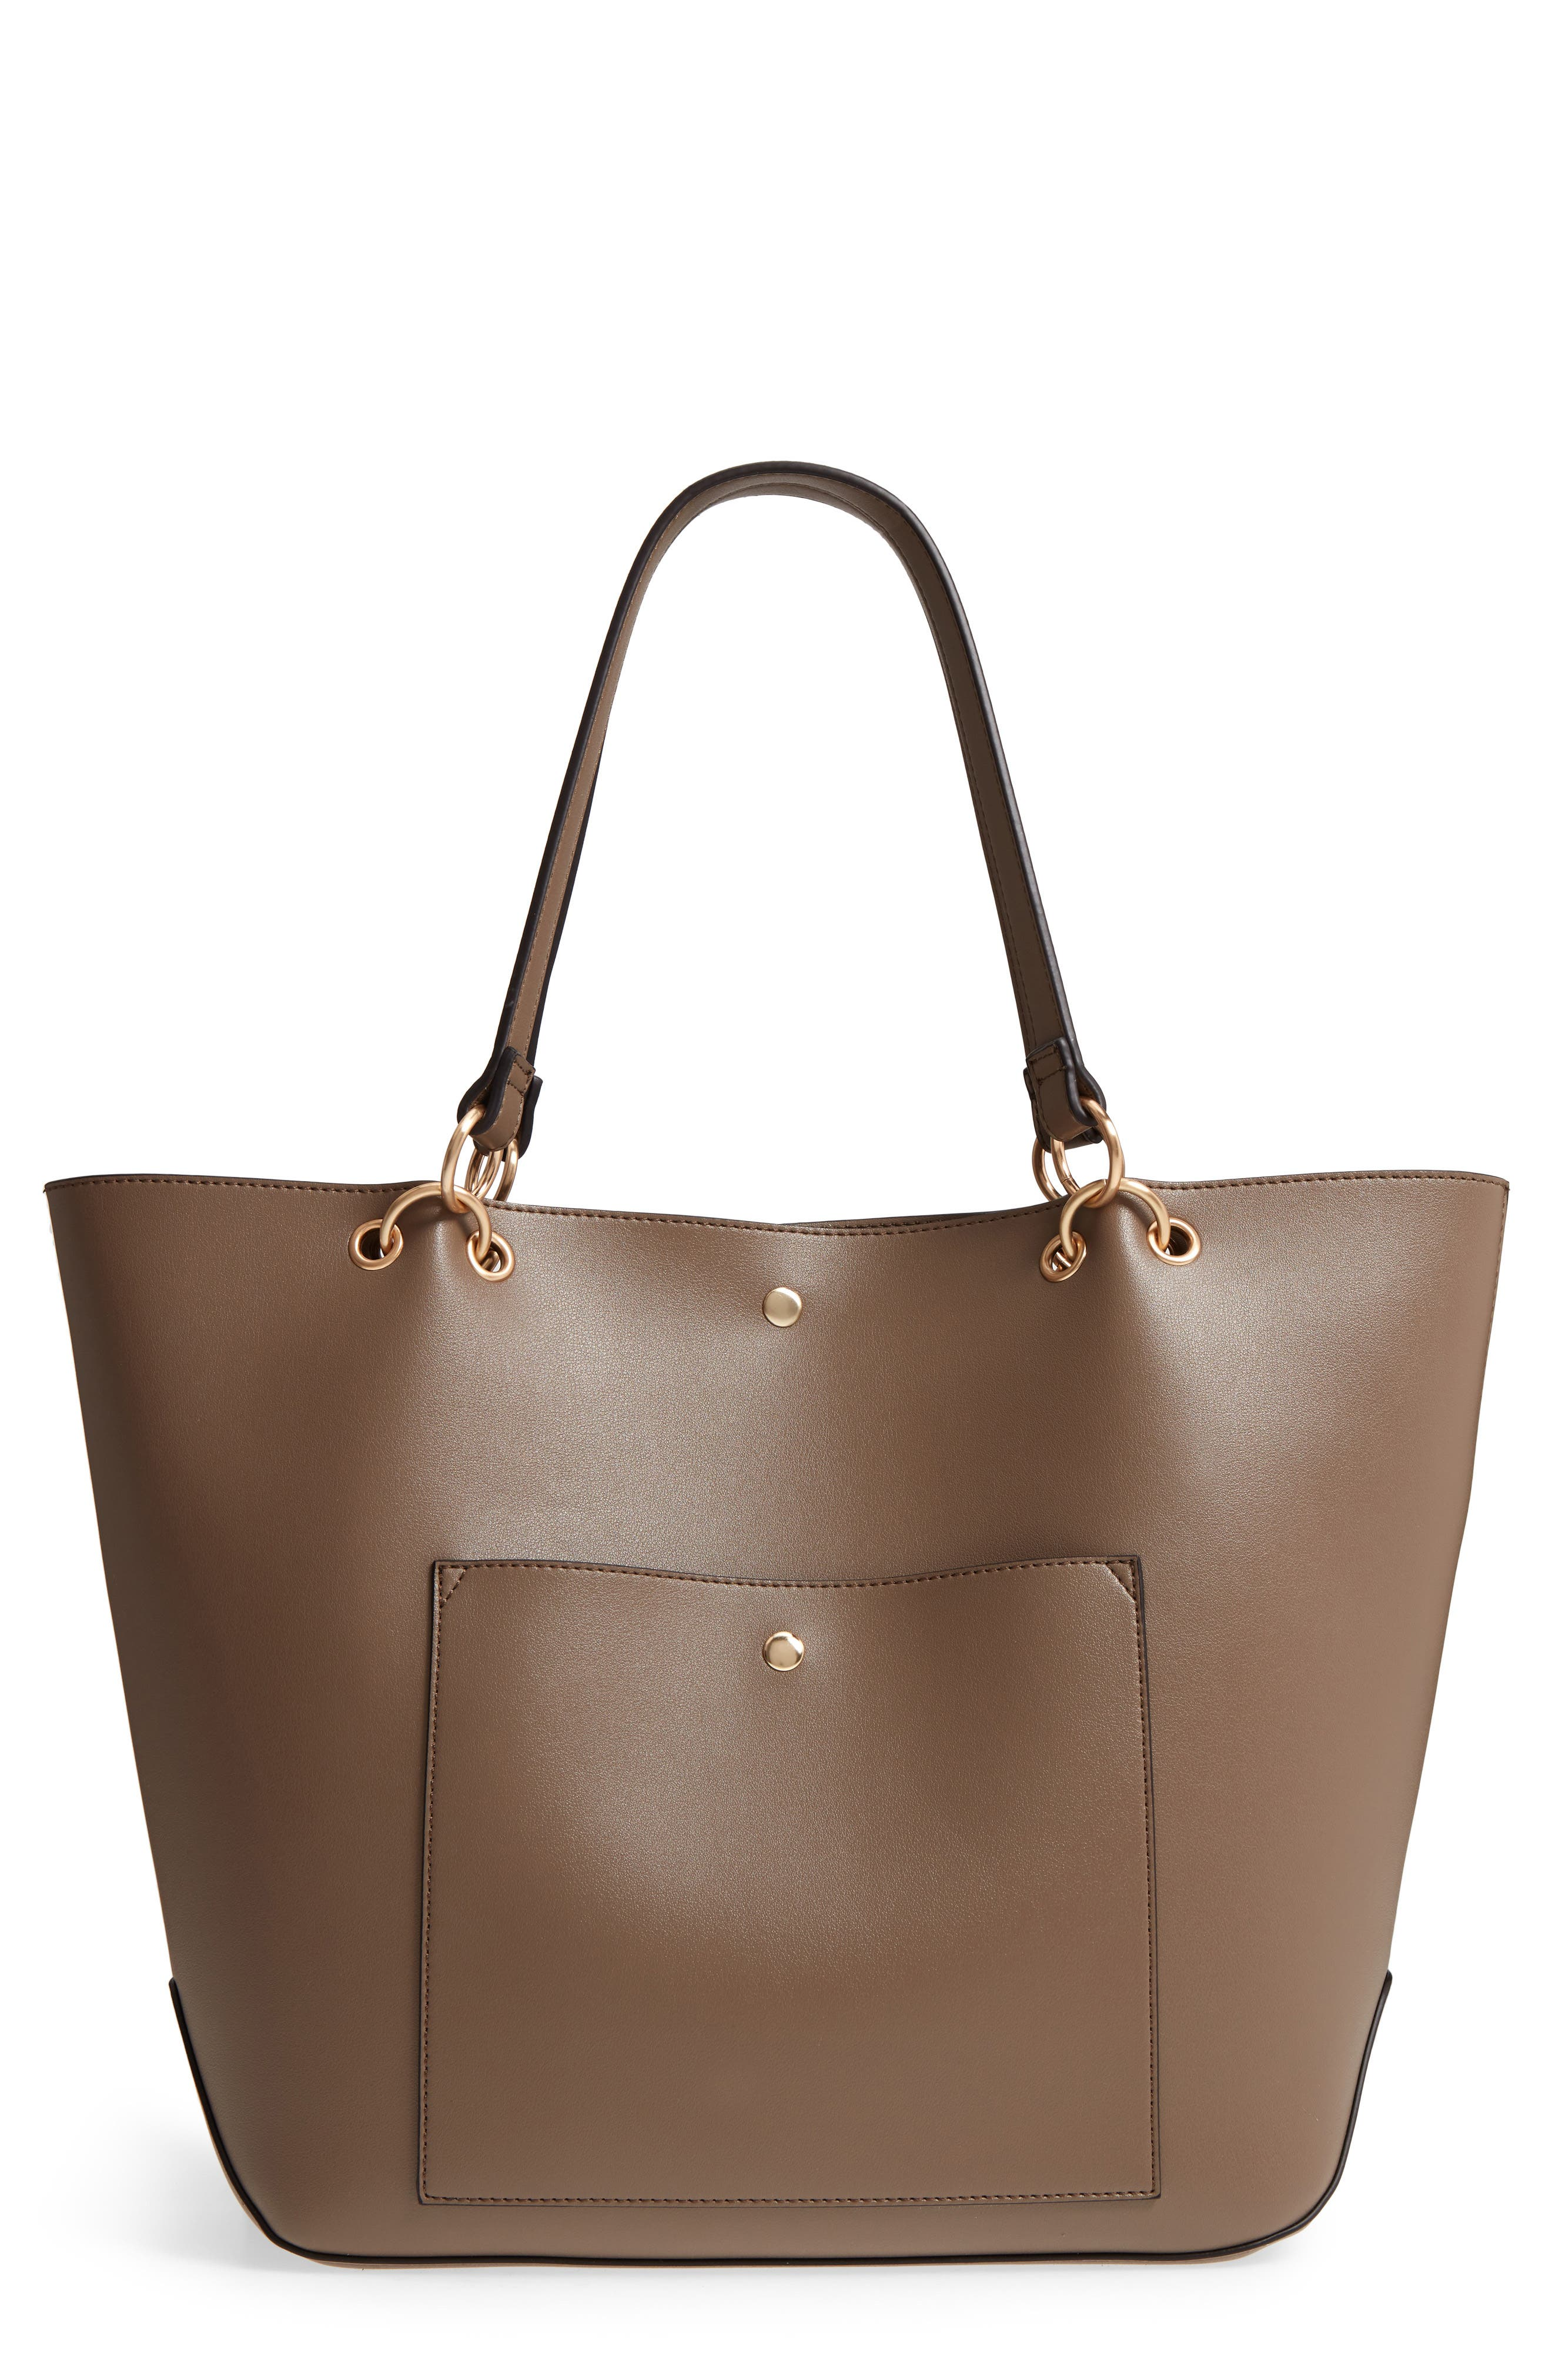 Fronto Faux Leather Tote,                             Main thumbnail 1, color,                             281